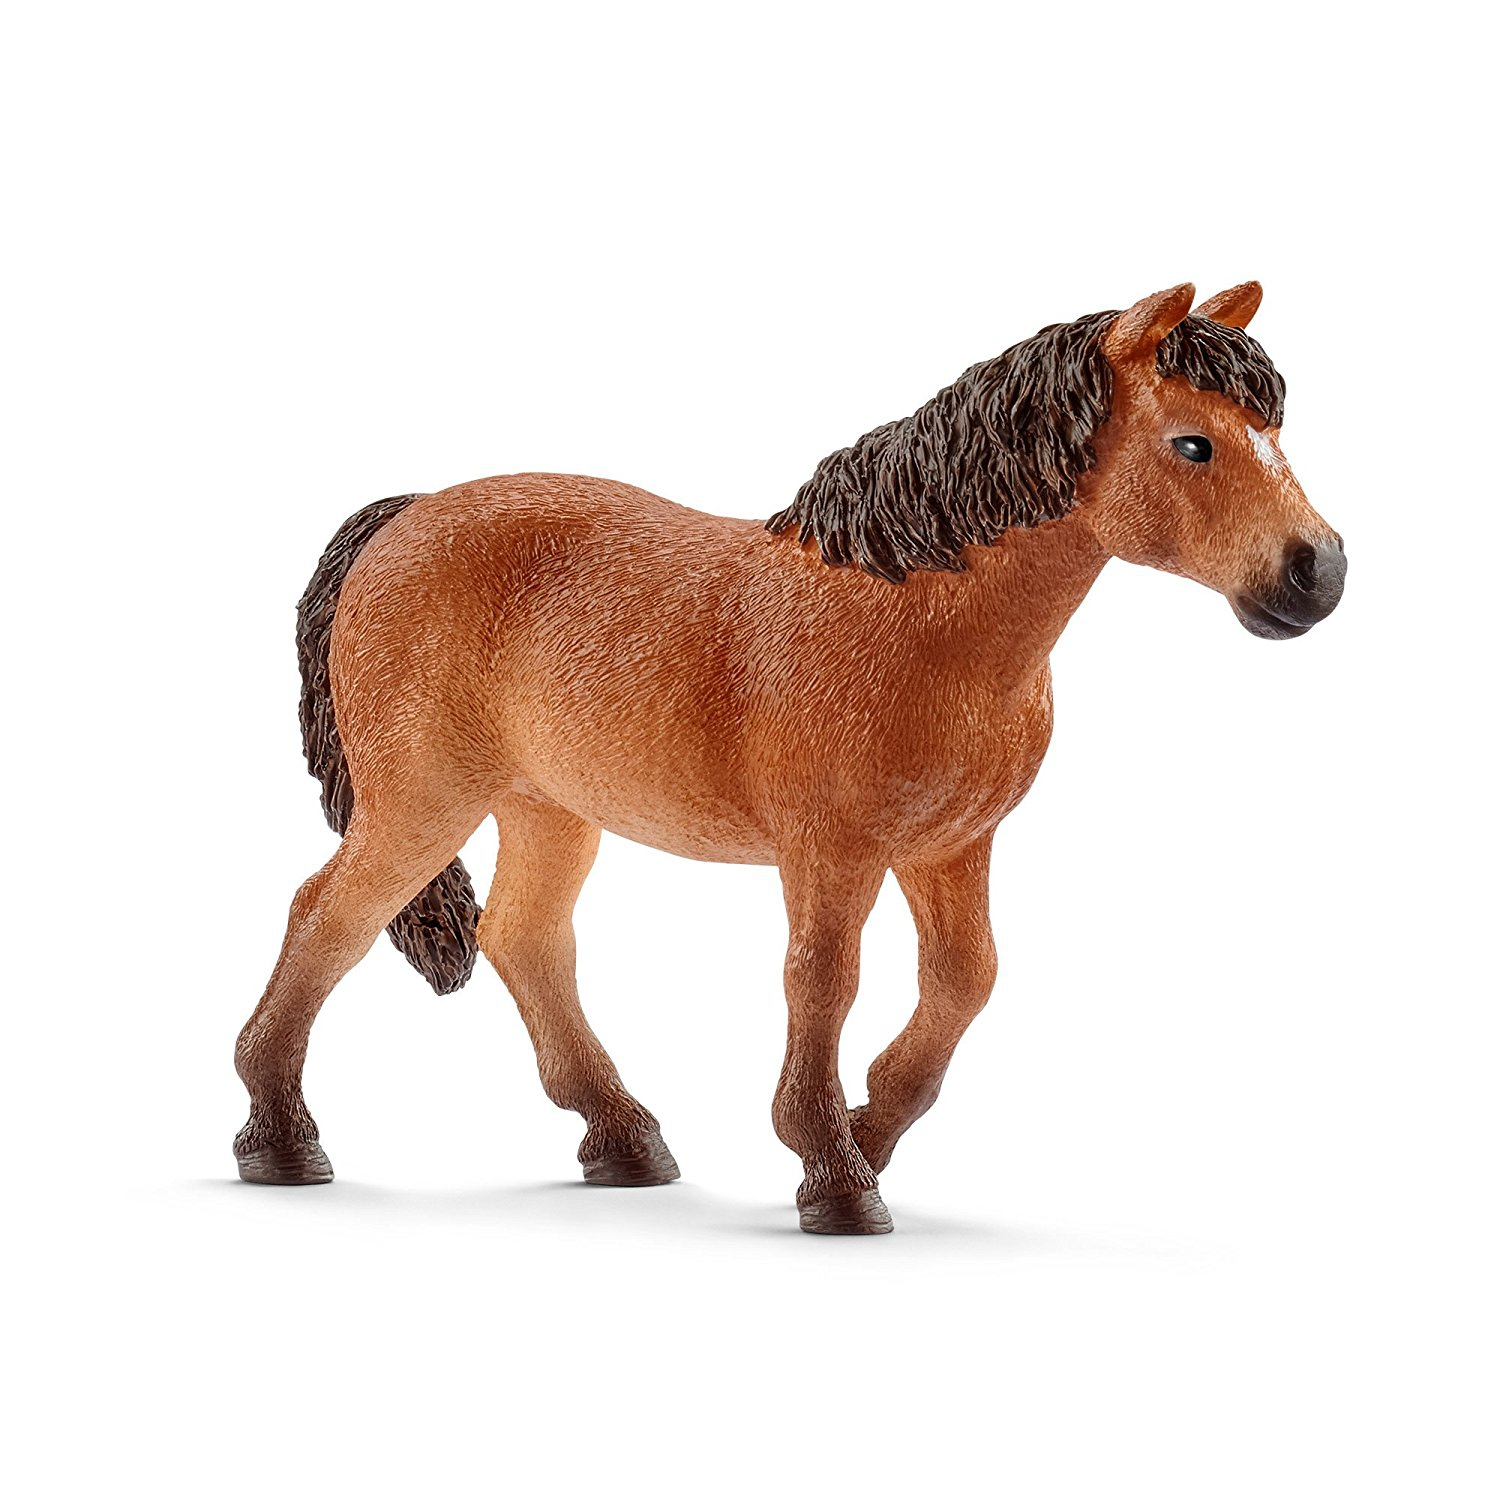 SCHLEICH FARM WORLD Dartmoori poni, mära